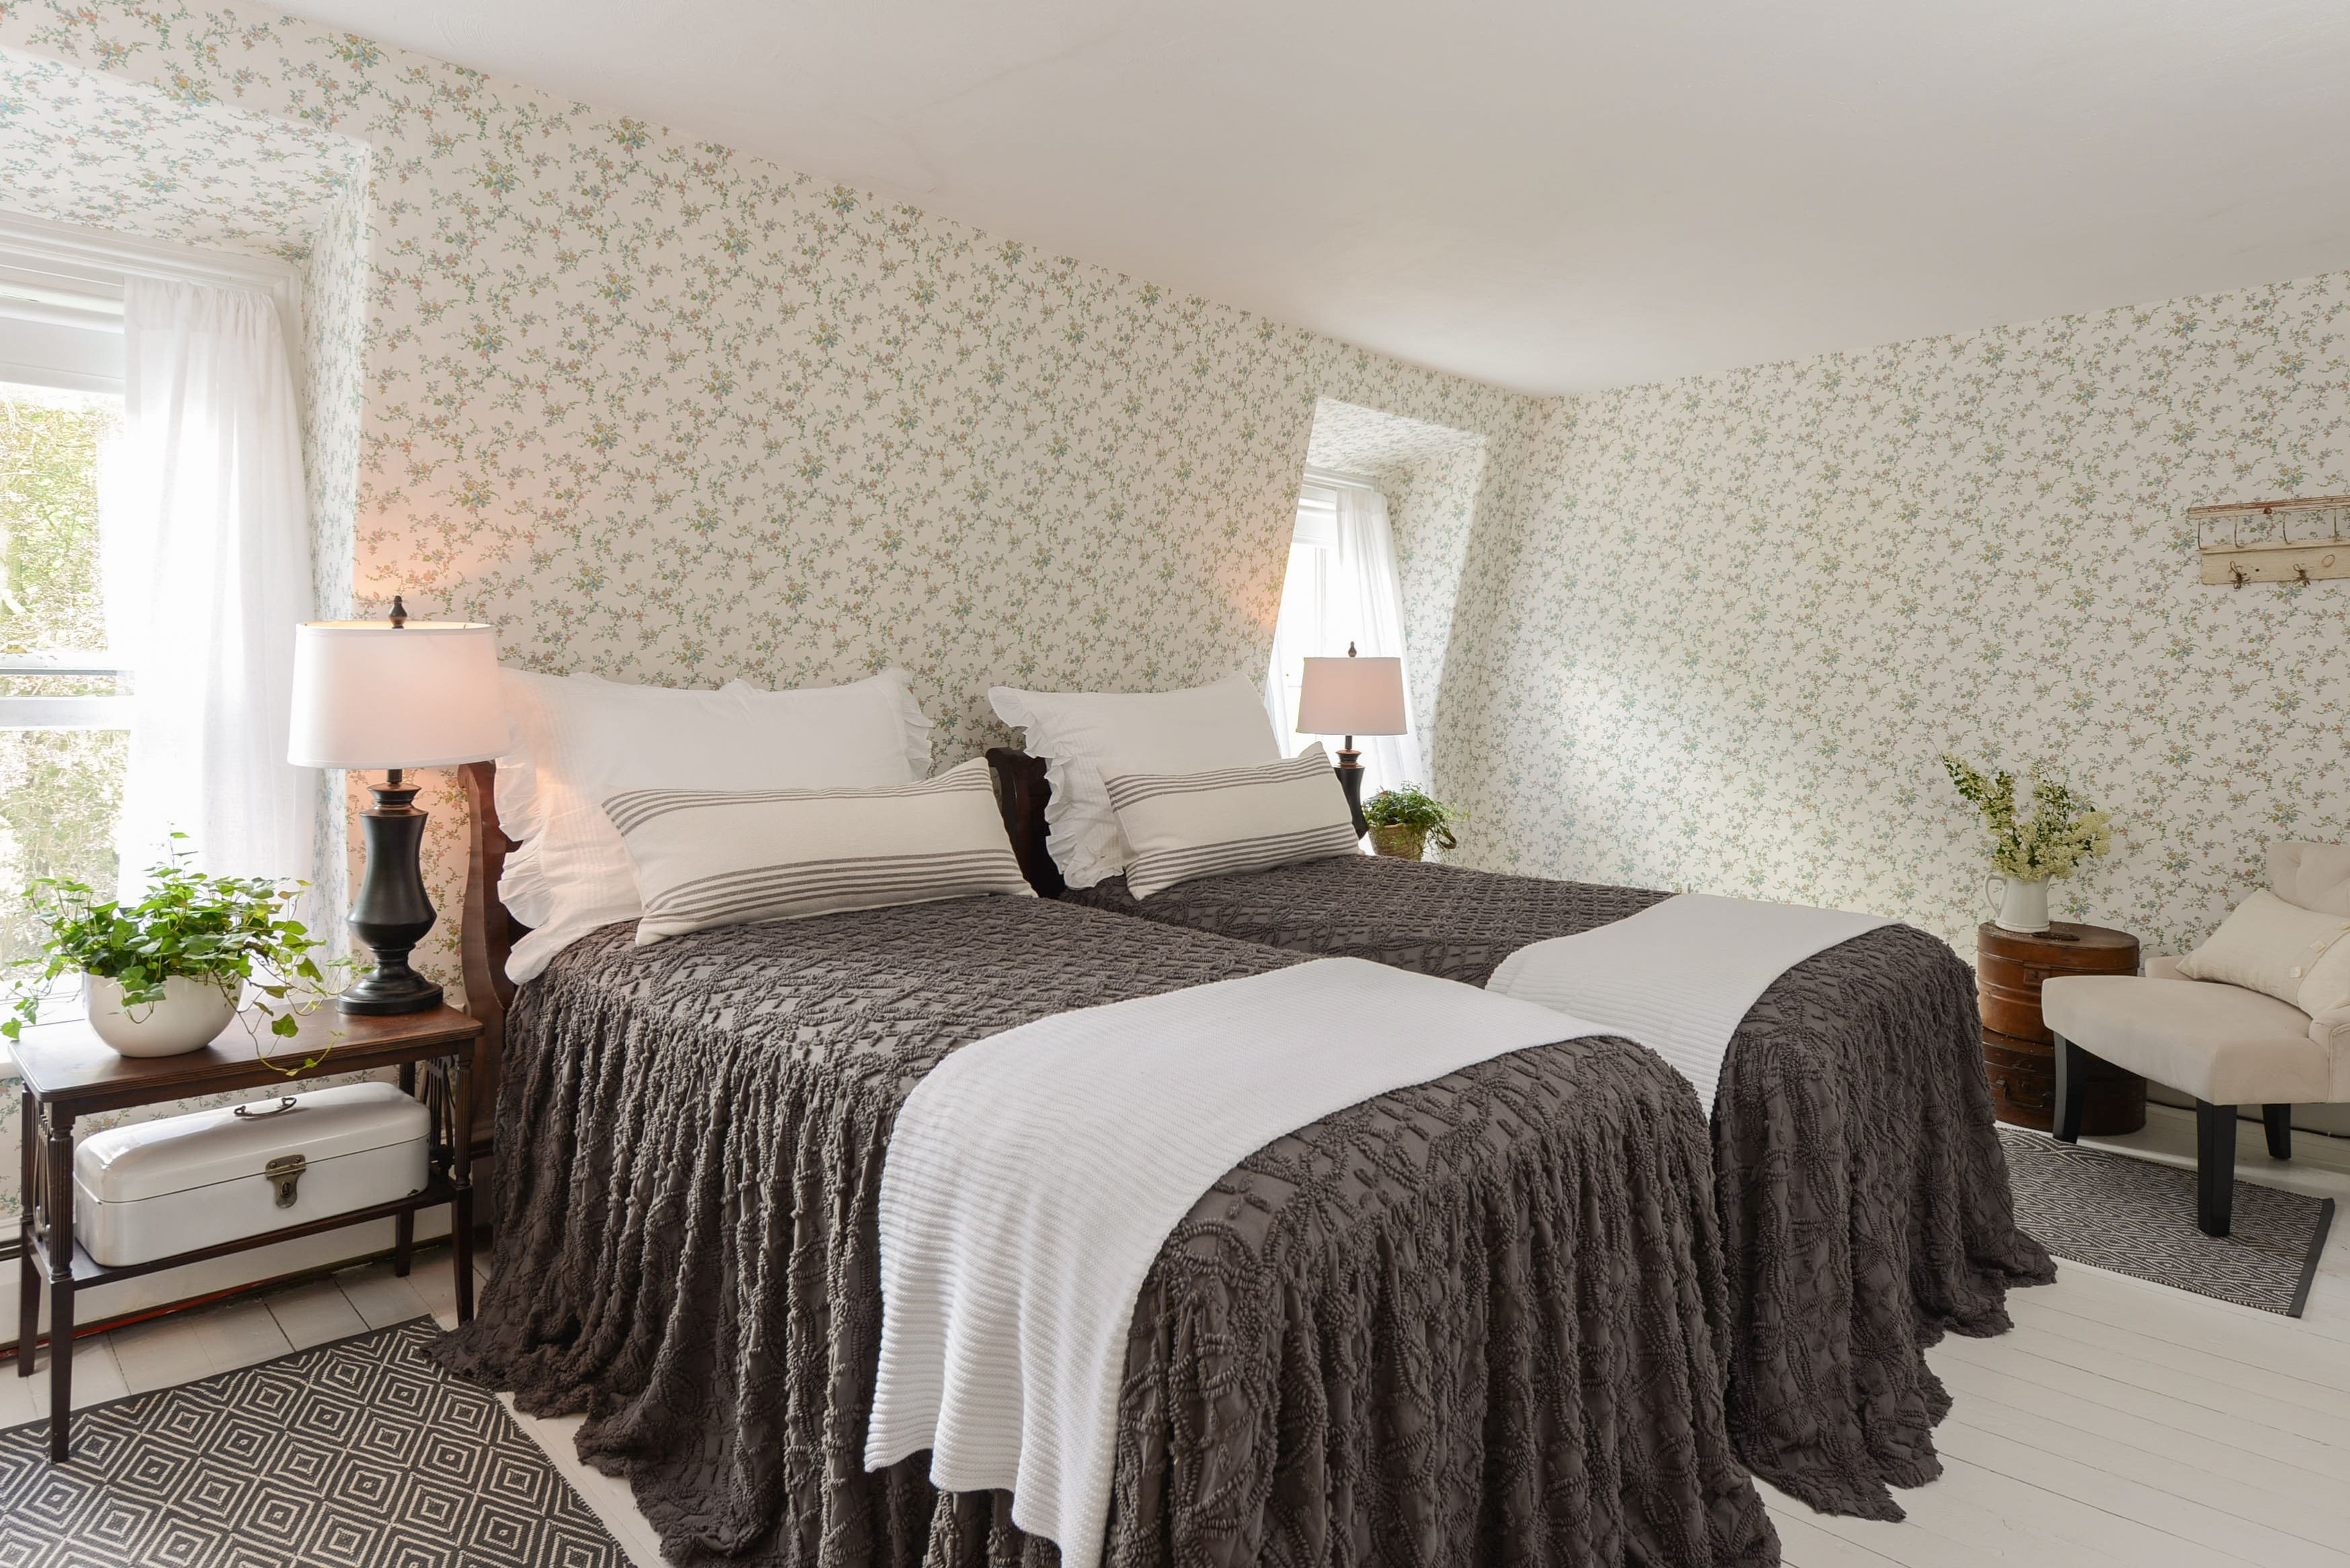 Drexel Heritage Bedroom Furniture Best Of Kept Existing Wallpaper and Upgraded the Rest and It Really